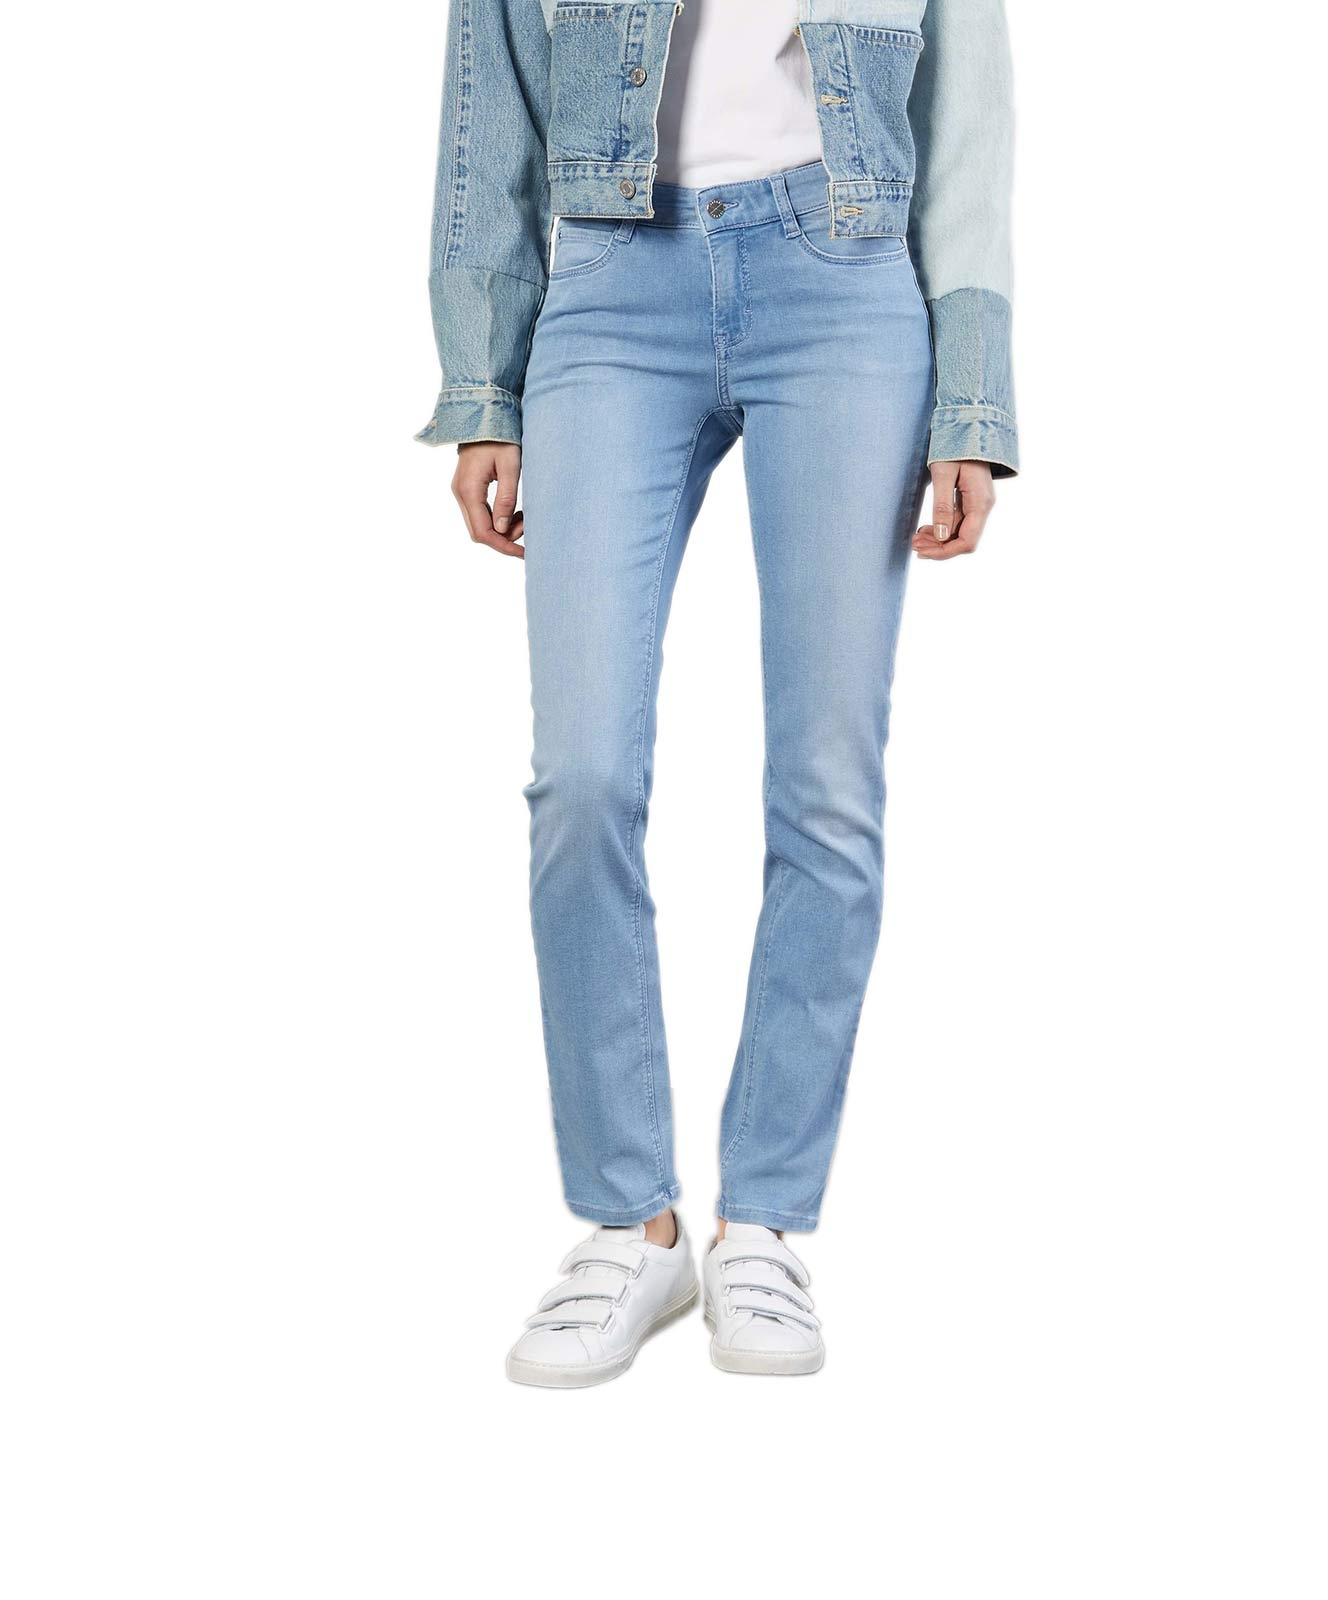 Hosen - MAC Straight Leg Jeans Dream in Basic Bleached Blue  - Onlineshop Jeans Meile